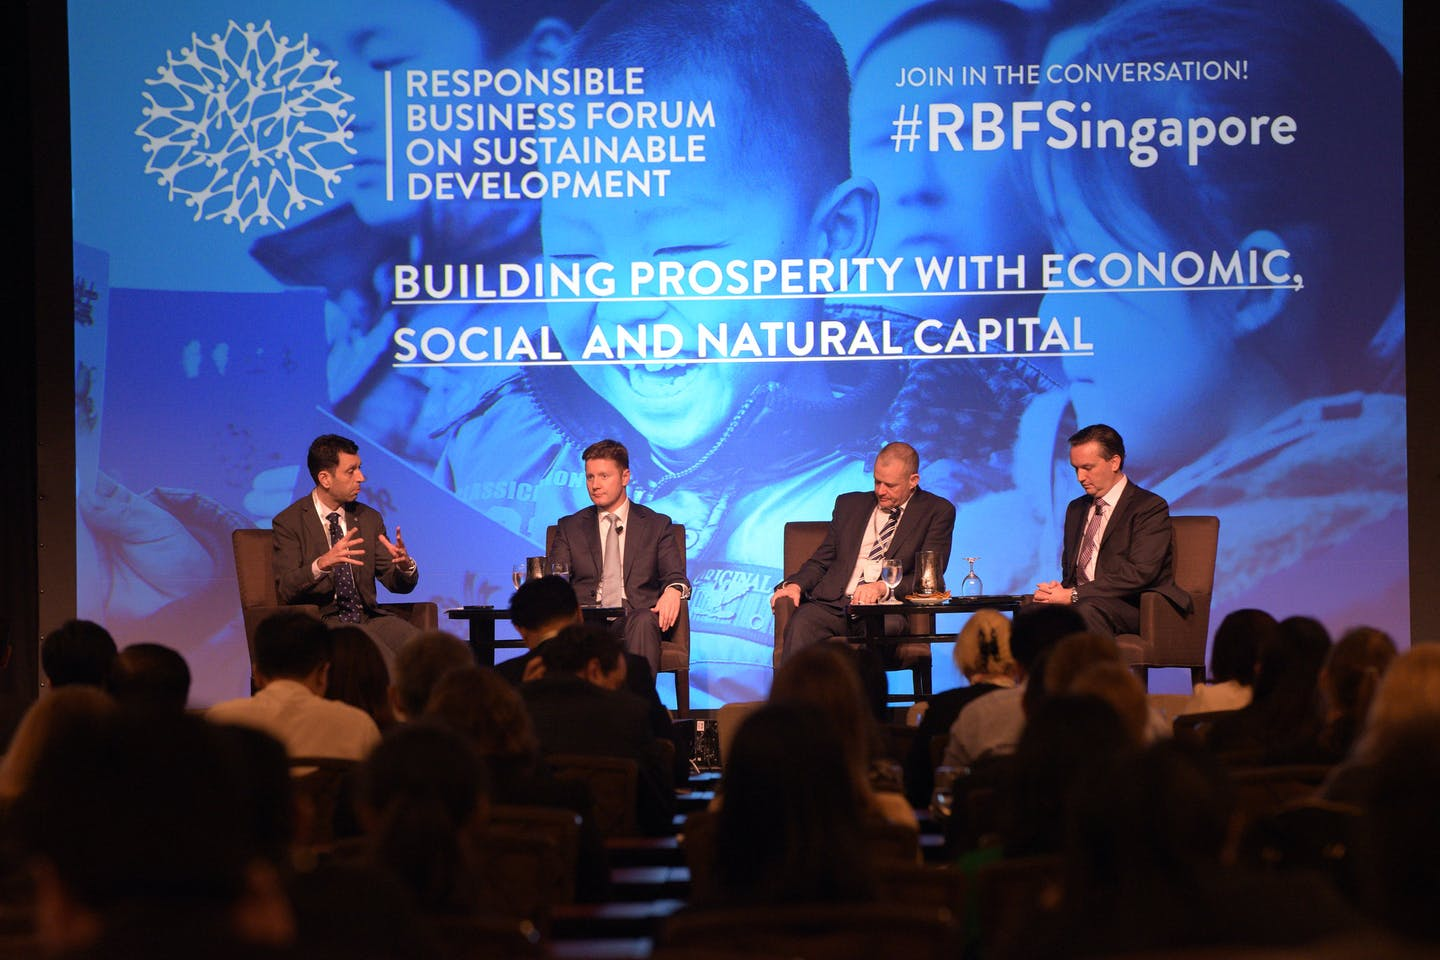 RBF natural capital panel